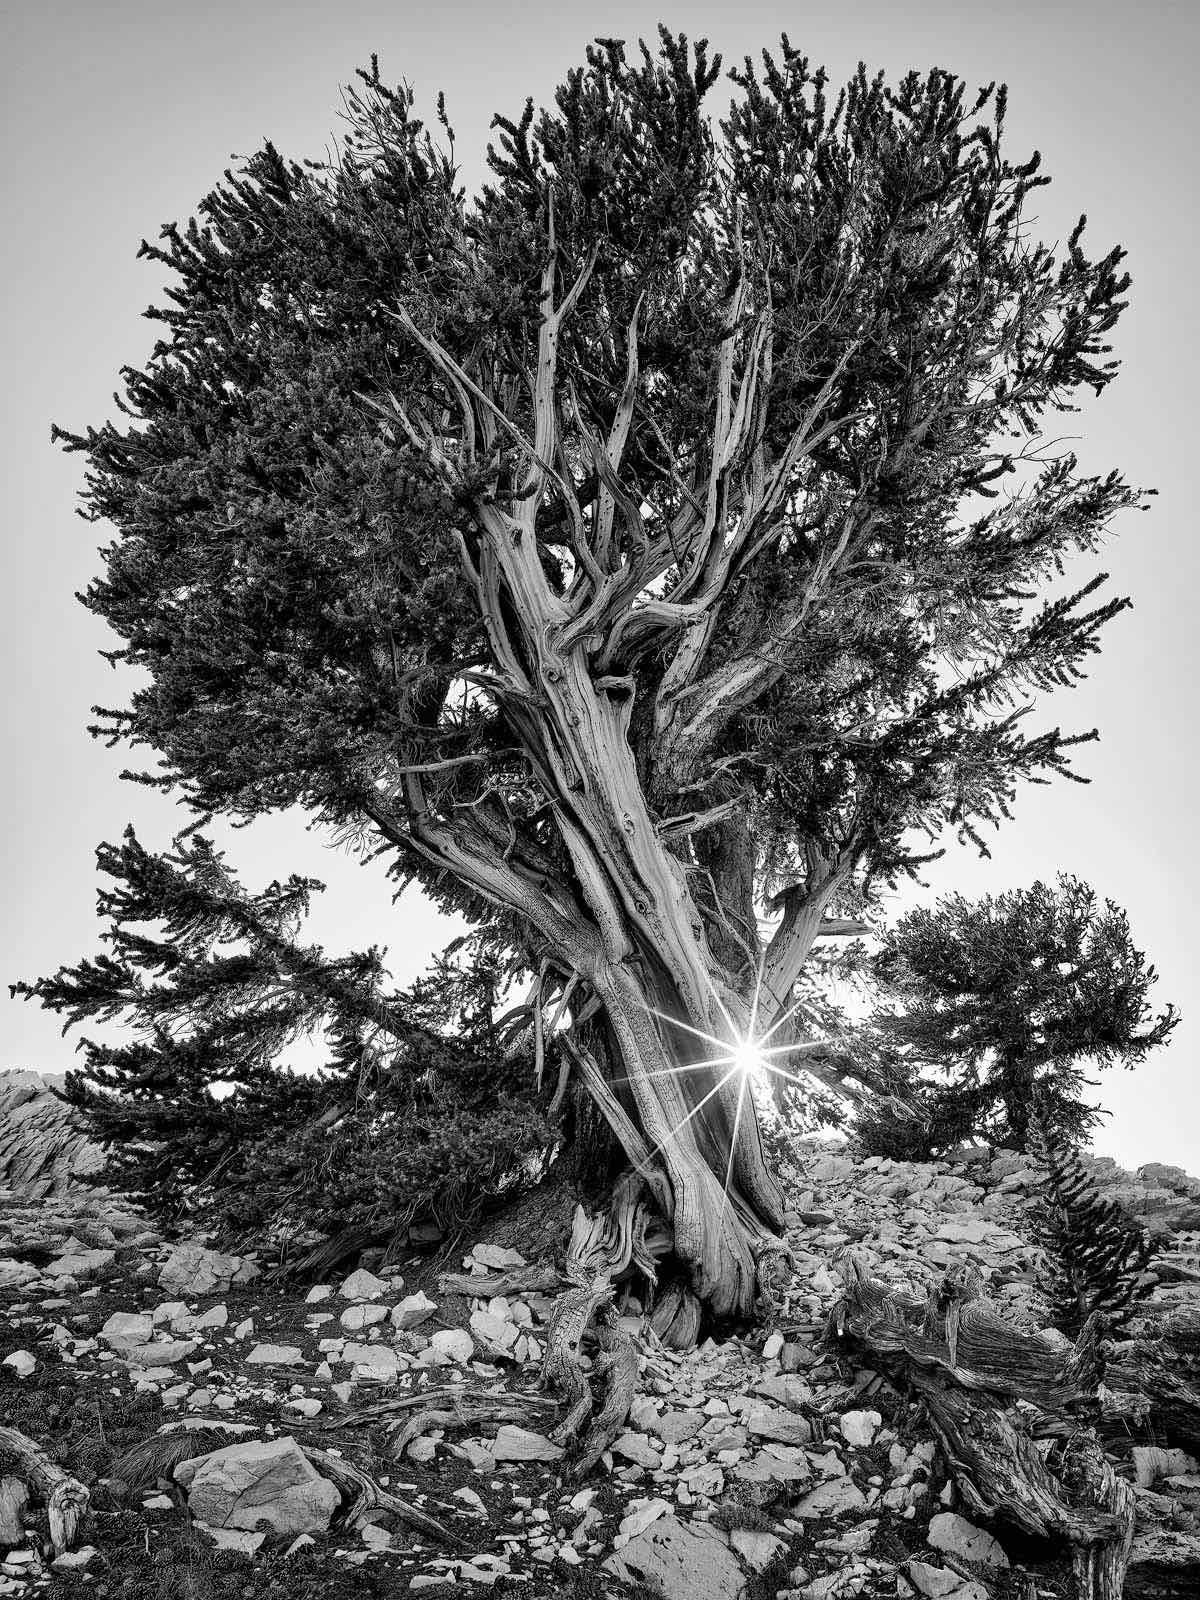 TIME OF DAY, sunset, WORLD REGIONS & COUNTRIES, North America, United States of America, California, Eastern Sierra Mountains, Ancient Bristlecone Pine Forest, plants, tree, photo